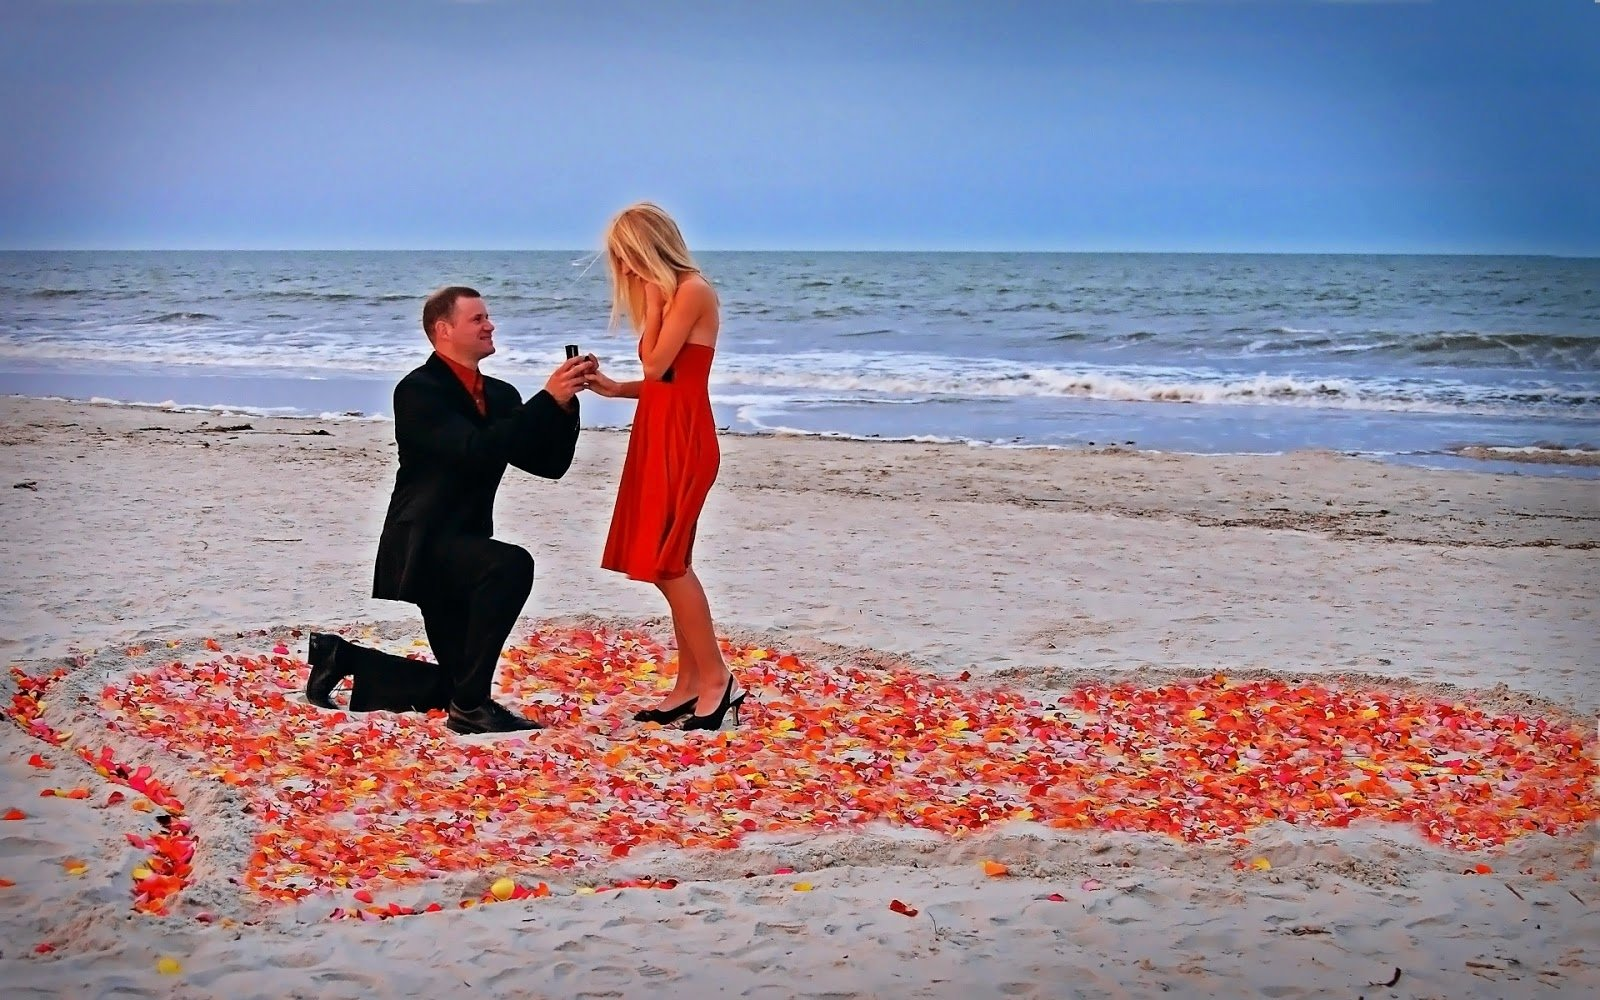 10 Unique Ideas On How To Propose proposal ideas 83 creative romantic ways to propose